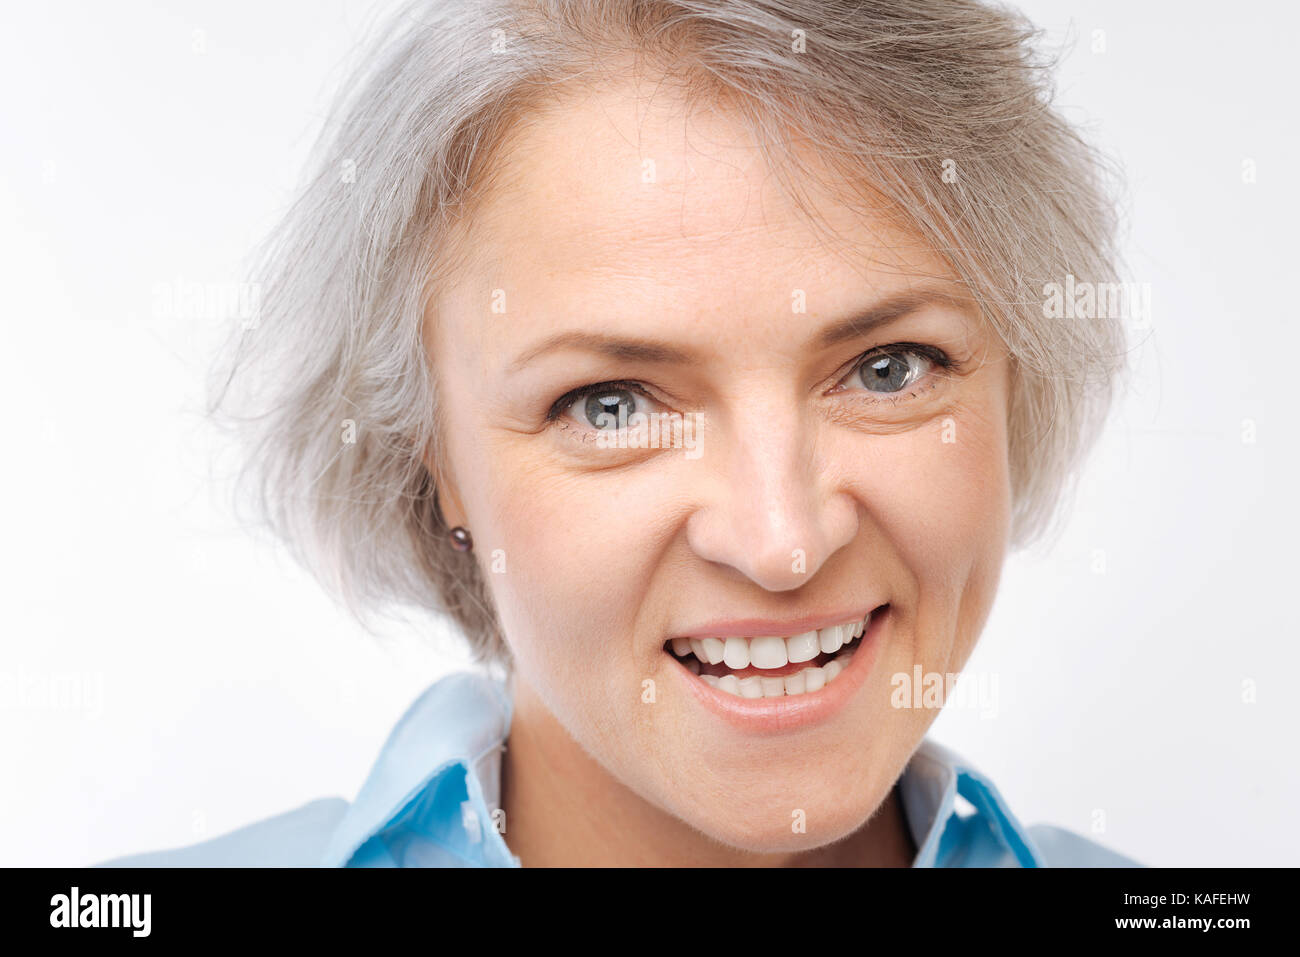 Close up of grey-haired woman grinning at camera - Stock Image